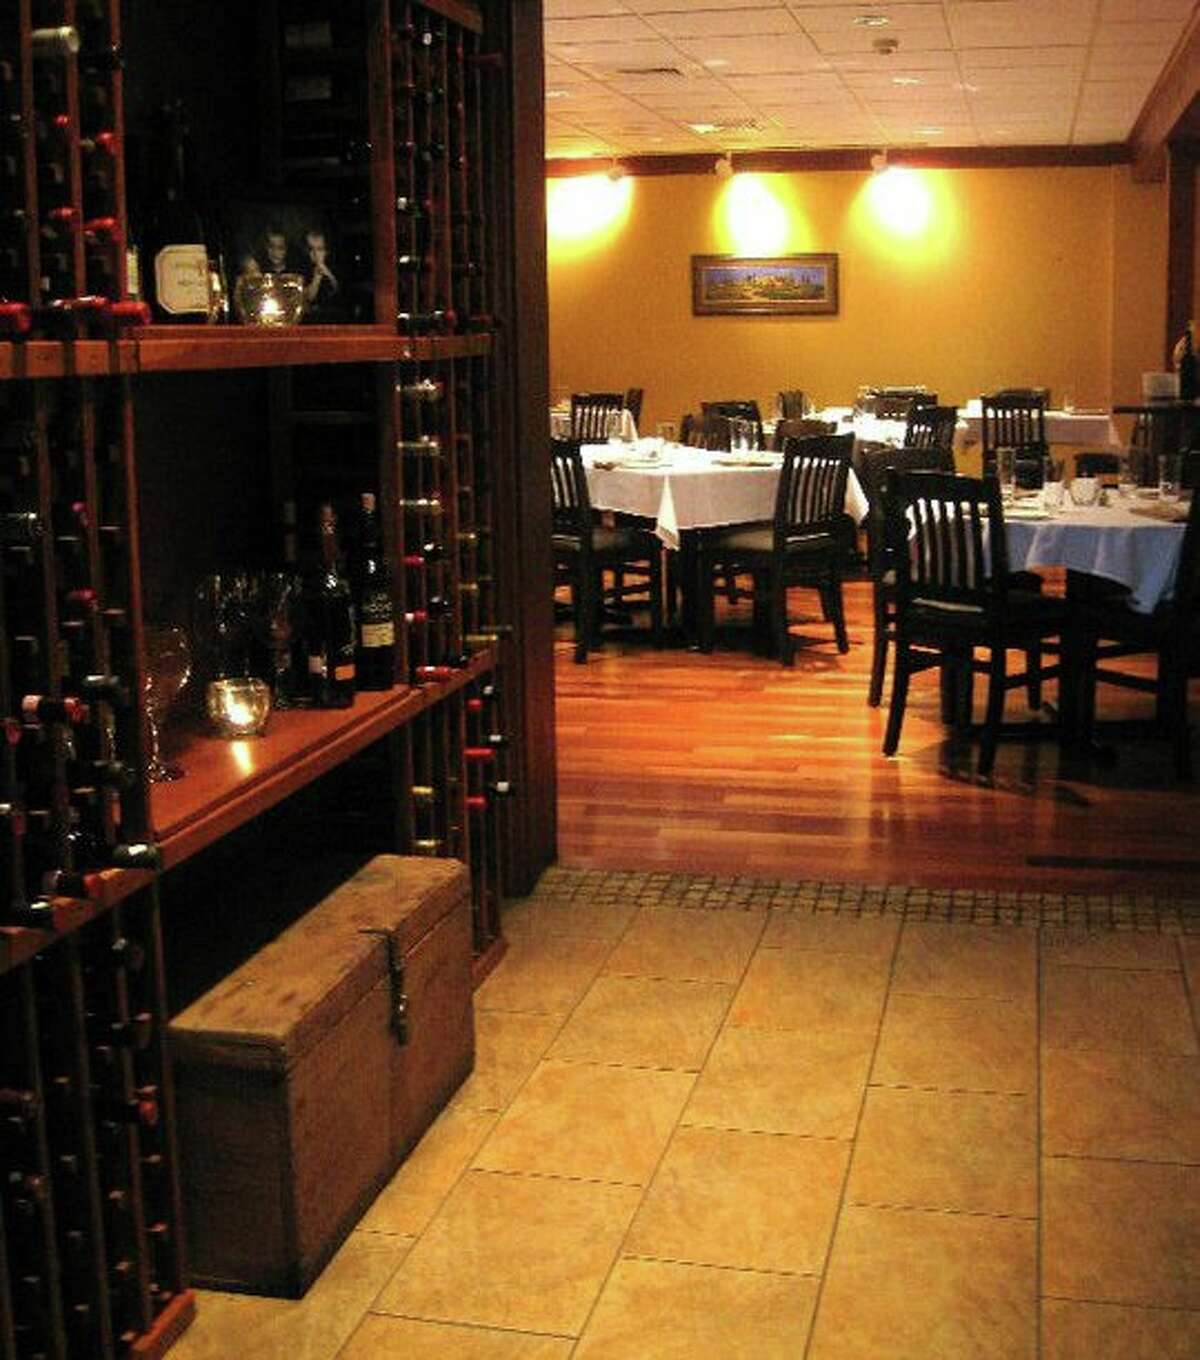 Jim and Cheryl Cella opened Cella Bistro in Schenectady in 2006, shortly after their son Michael graduated from the Culinary Institute of America. (Cella Bistro)